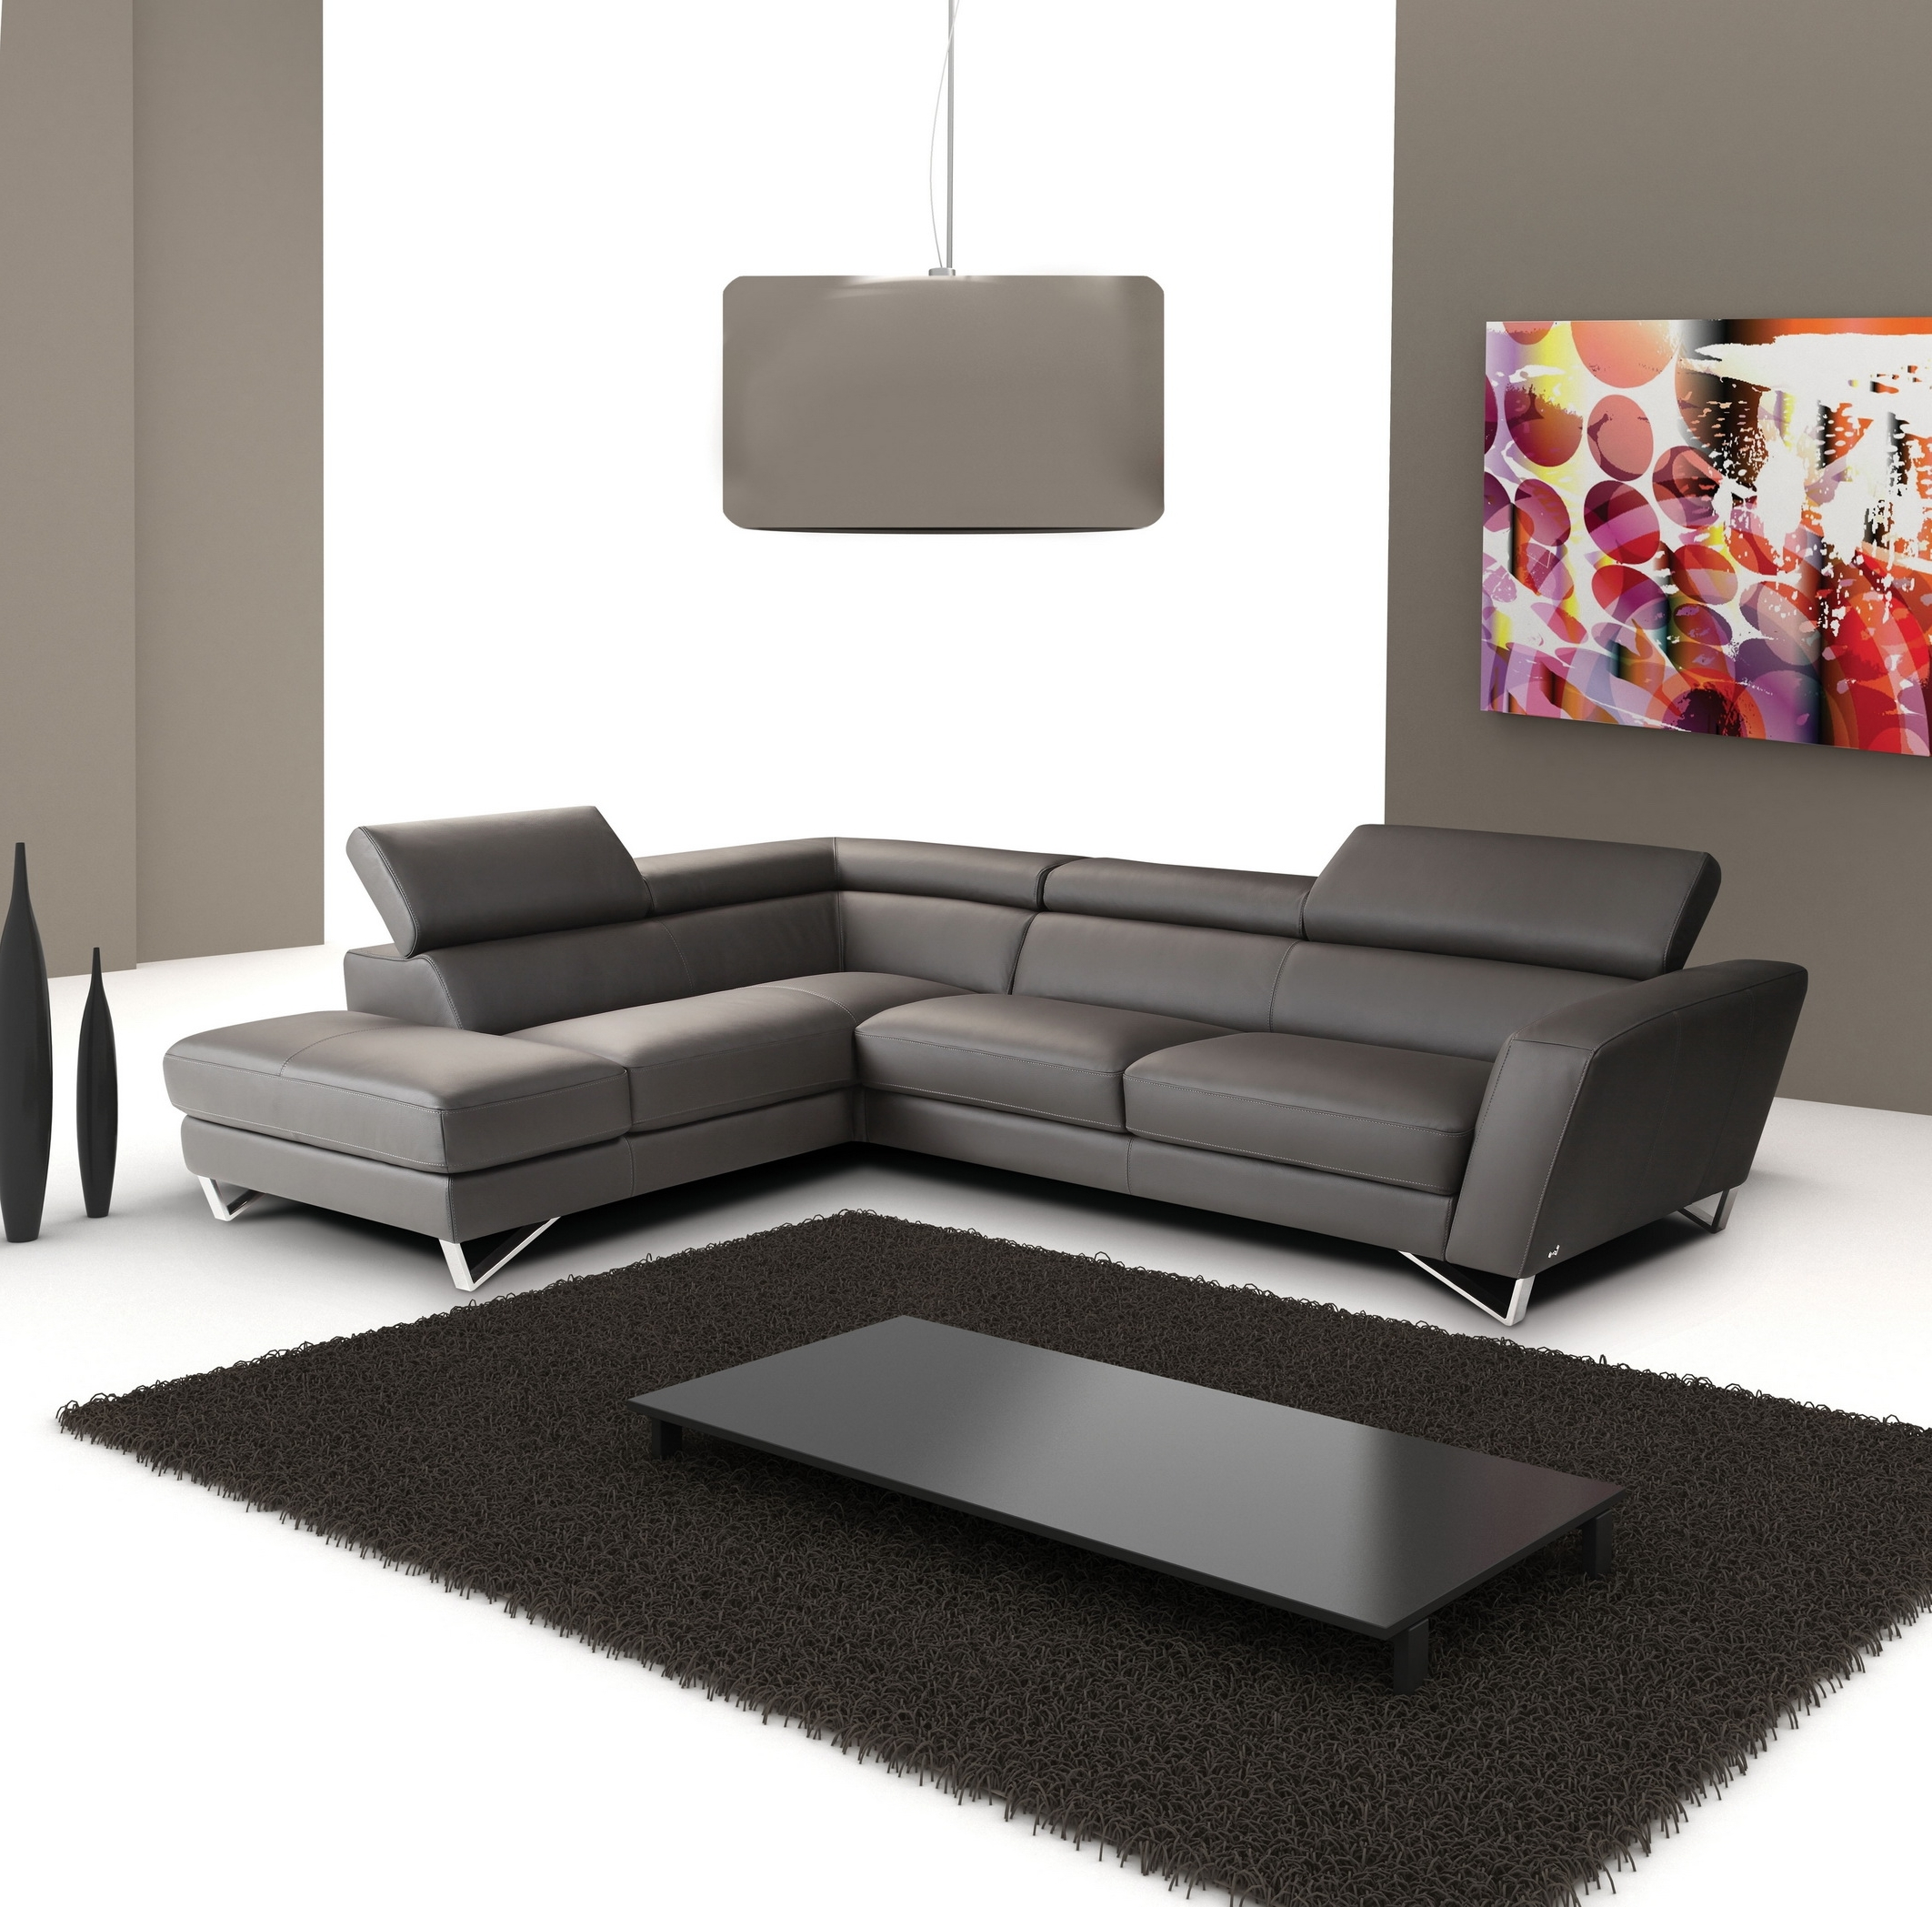 Preferred Sectional Sofas Under 300 Inside Furniture: Using Pretty Cheap Sectional Sofas Under 300 For (View 13 of 15)